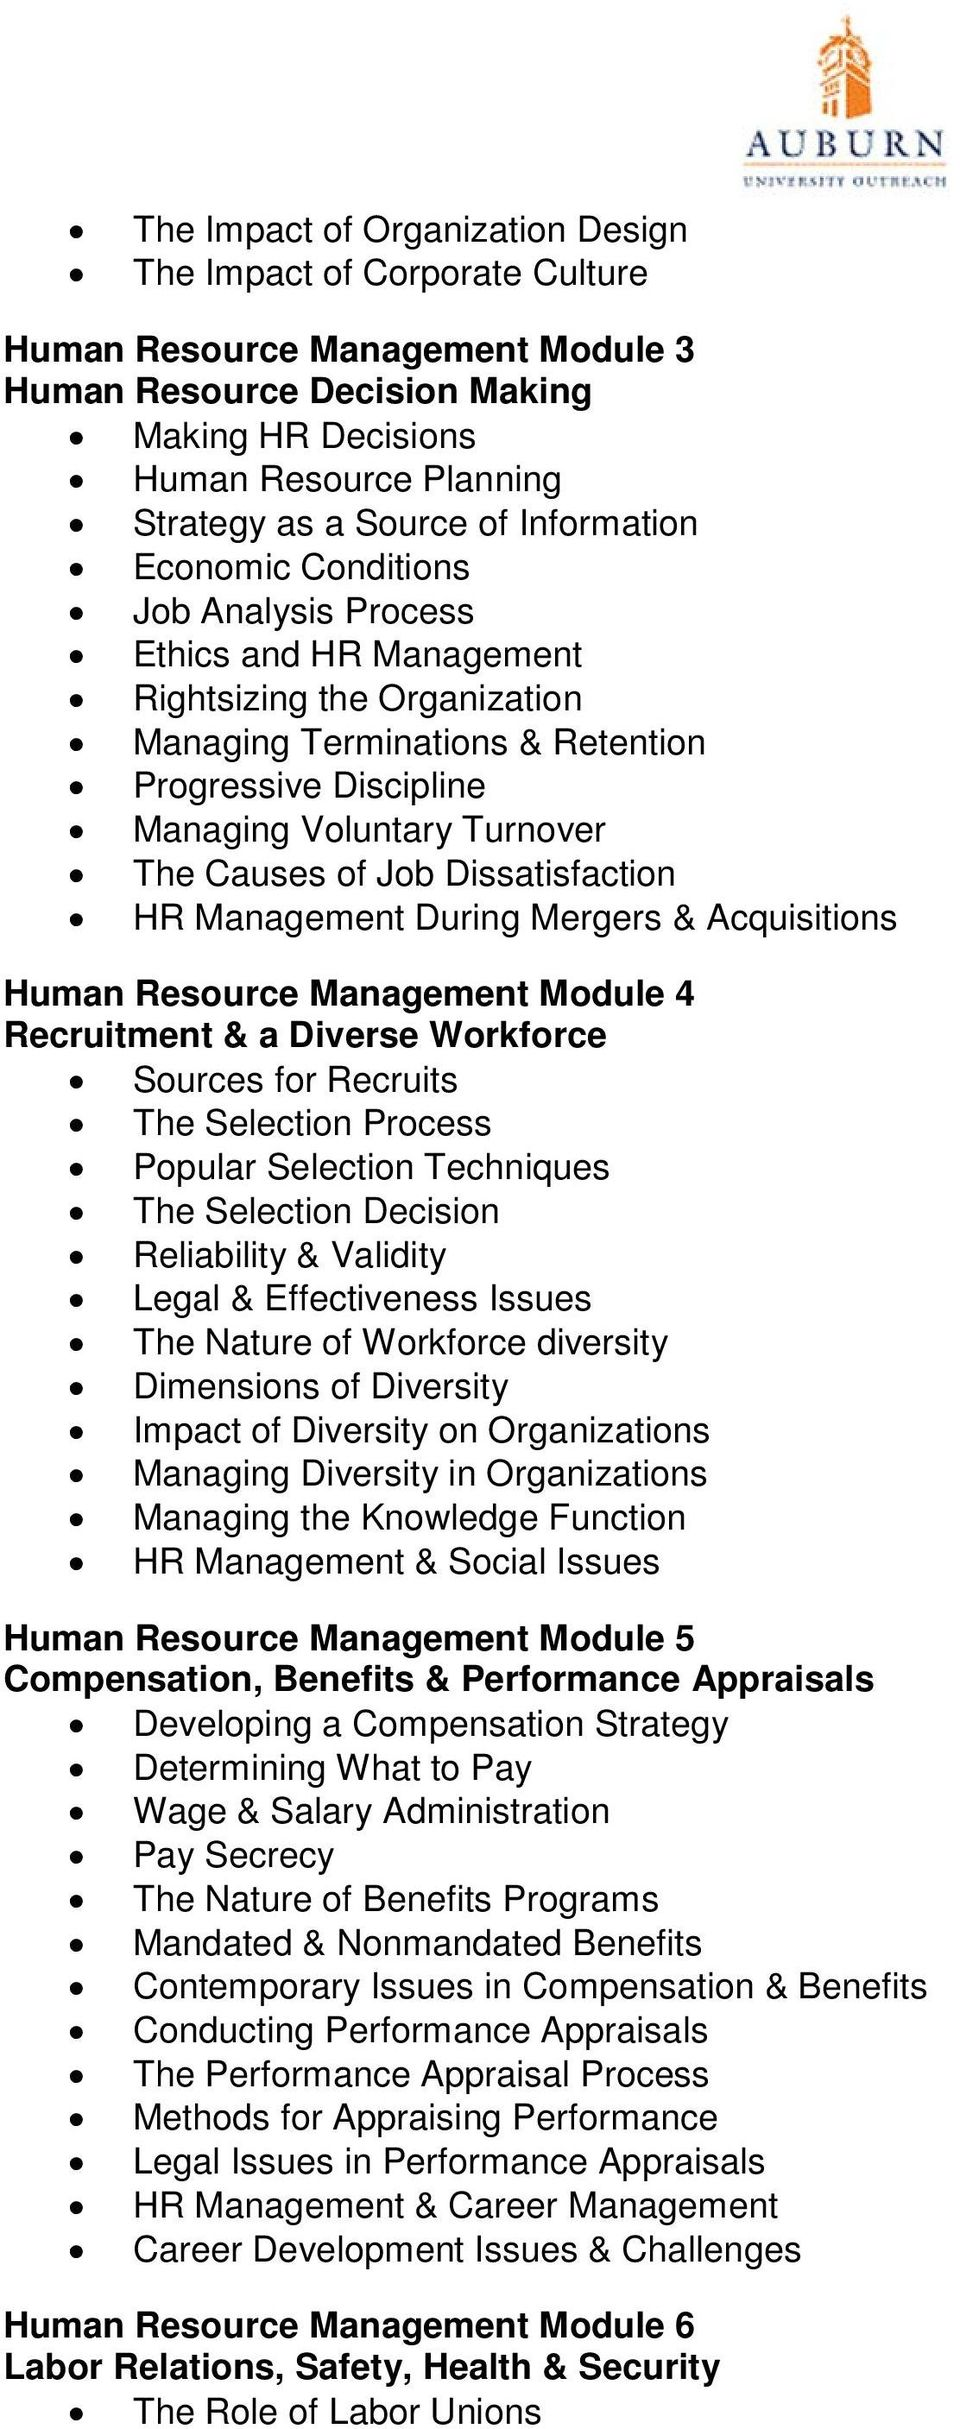 Causes of Job Dissatisfaction HR Management During Mergers & Acquisitions Human Resource Management Module 4 Recruitment & a Diverse Workforce Sources for Recruits The Selection Process Popular